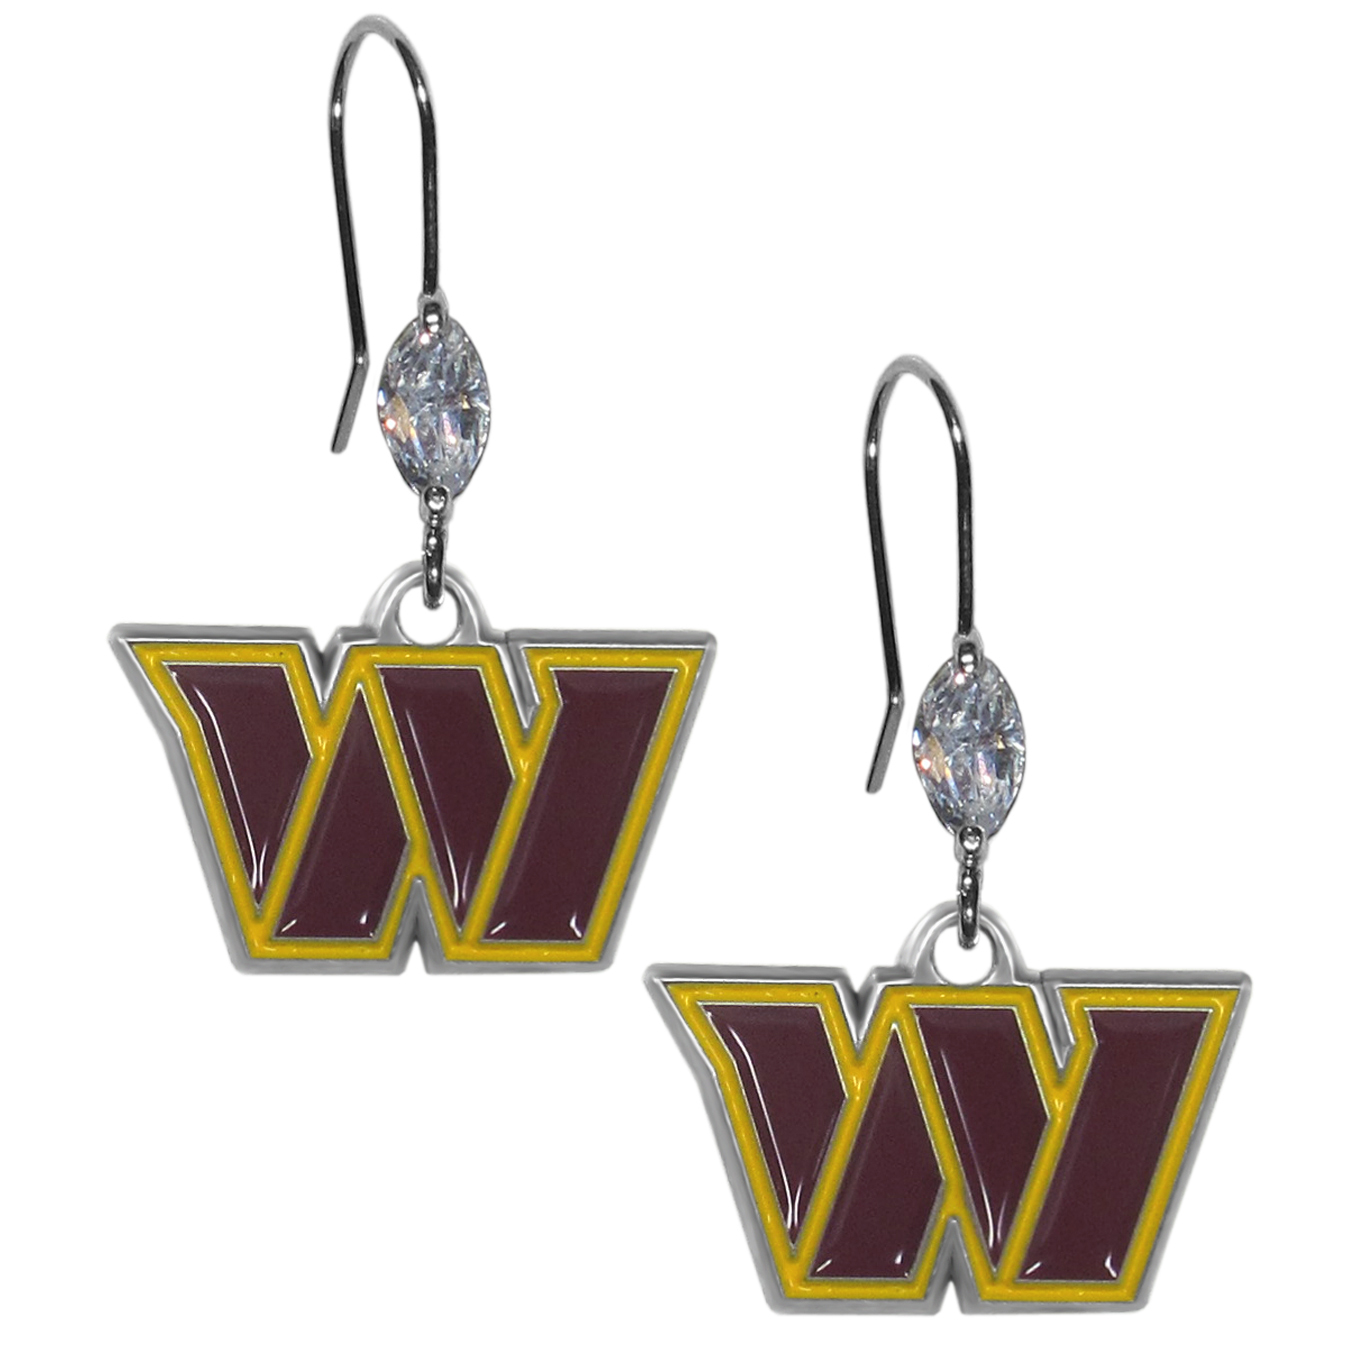 Washington Redskins Crystal Dangle Earrings - Our crystal dangle earrings are the perfect accessory for your game day outfit! The earrings are approximately 1.5 inches long and feature an iridescent crystal bead and nickel free chrome Washington Redskins charm on nickel free, hypoallergenic fishhook posts.